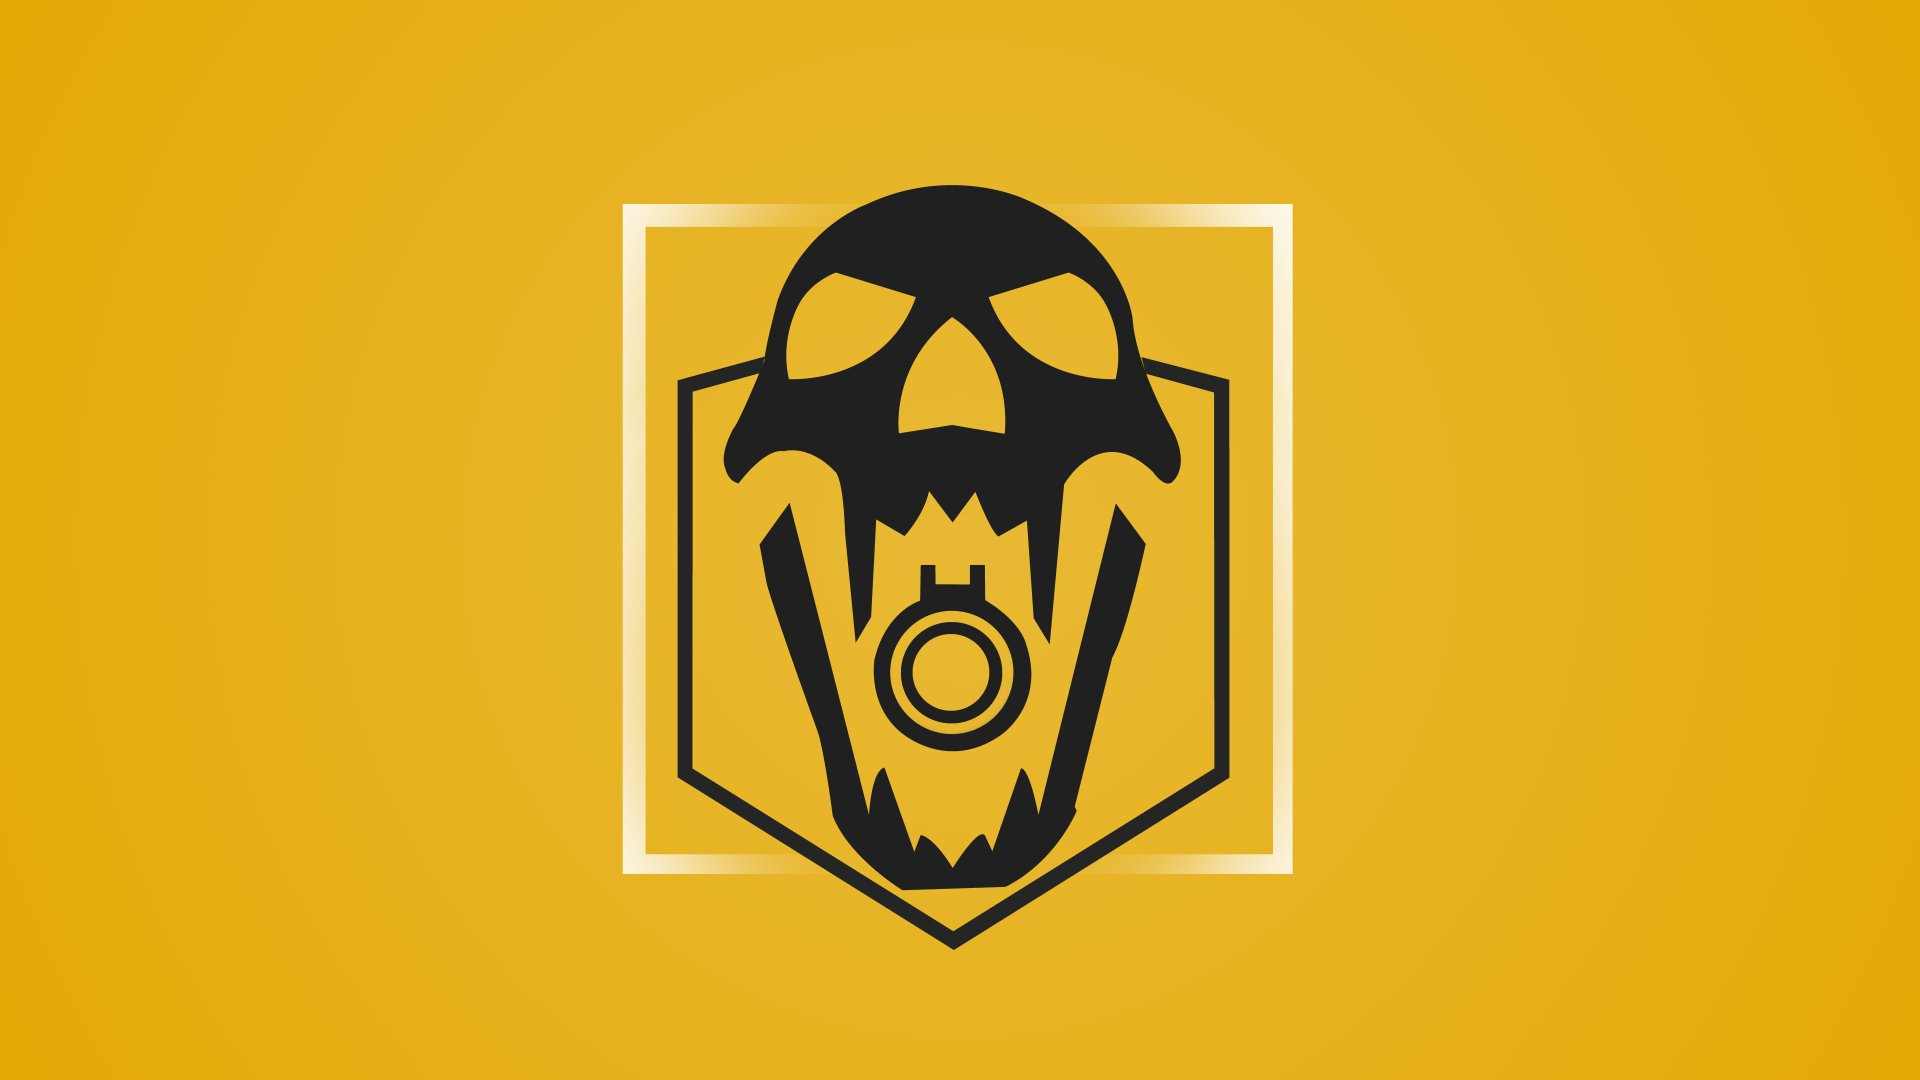 Video Game - Tom Clancy's Rainbow Six: Siege  Blackbeard (Tom Clancy's Rainbow Six: Siege) Yellow Skull Minimalist Wallpaper